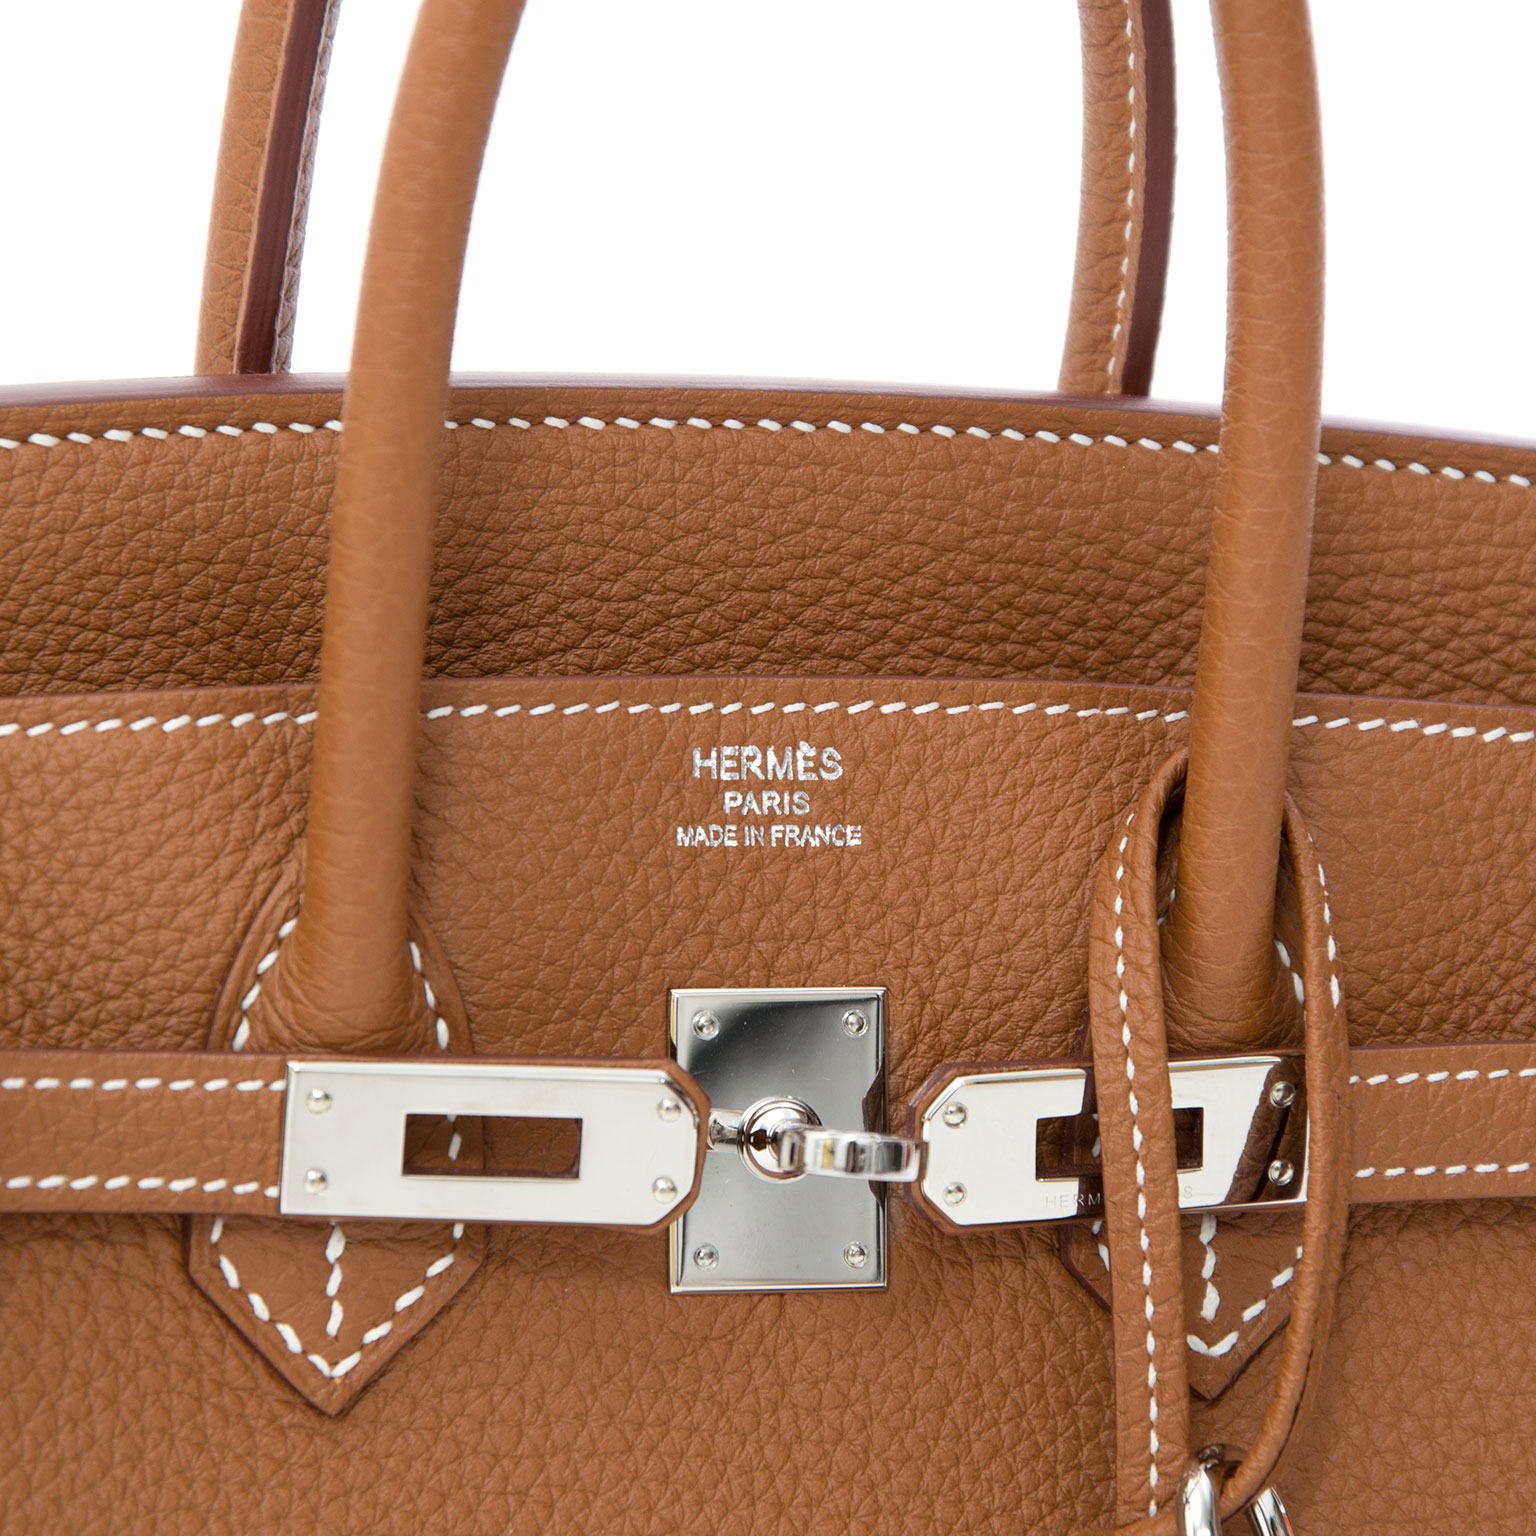 e48f8c55e55 Koop veilig onine tweedehands The size of this petite Hermès Birkin bag is  what makes it really stand out. Hermes